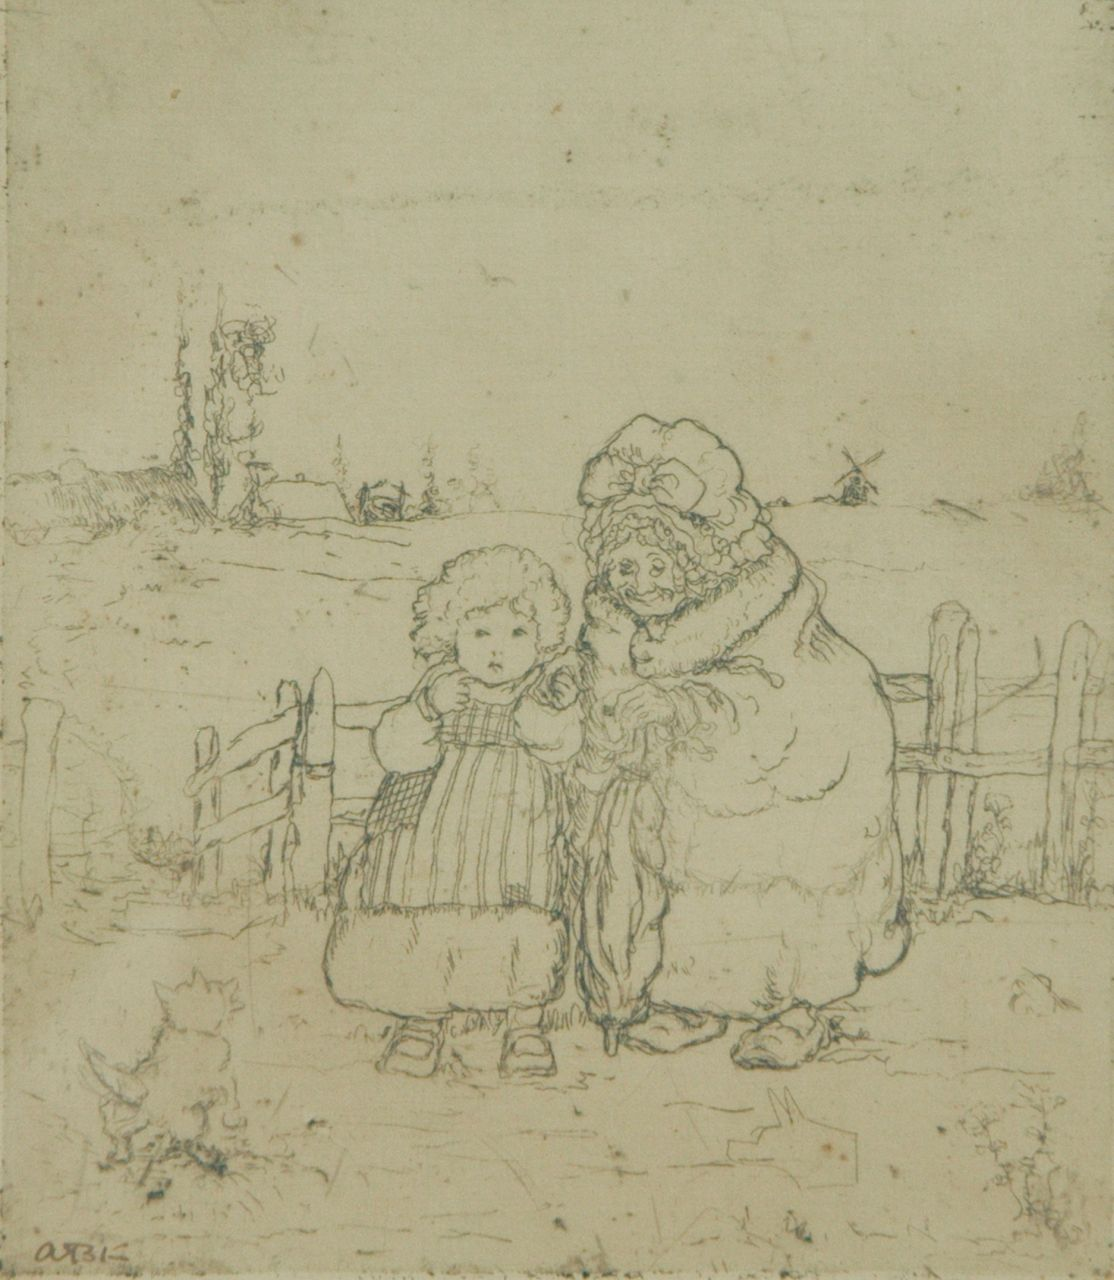 Adrienne Klinkhamer | Grandmother and child, etching on paper, 12.3 x 10.6 cm, signed l.l. with initials (in pen)